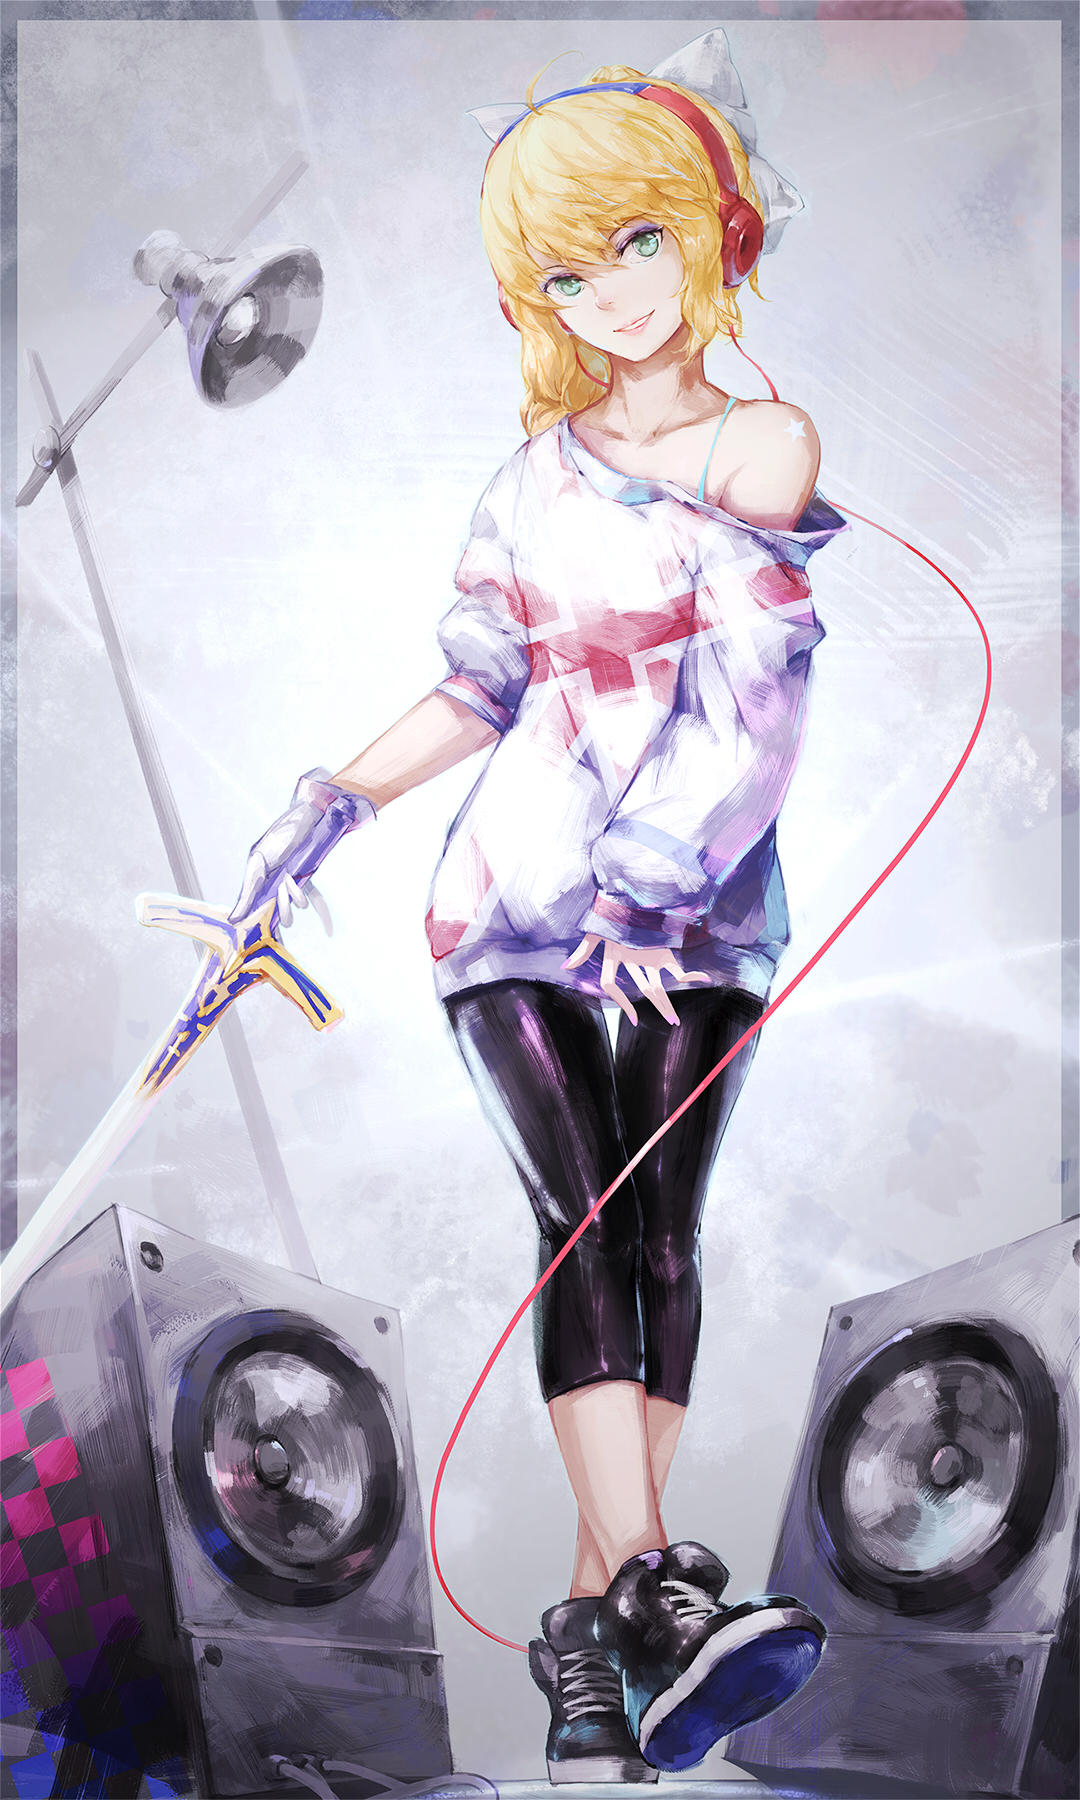 saber lily - saber  fate  stay night